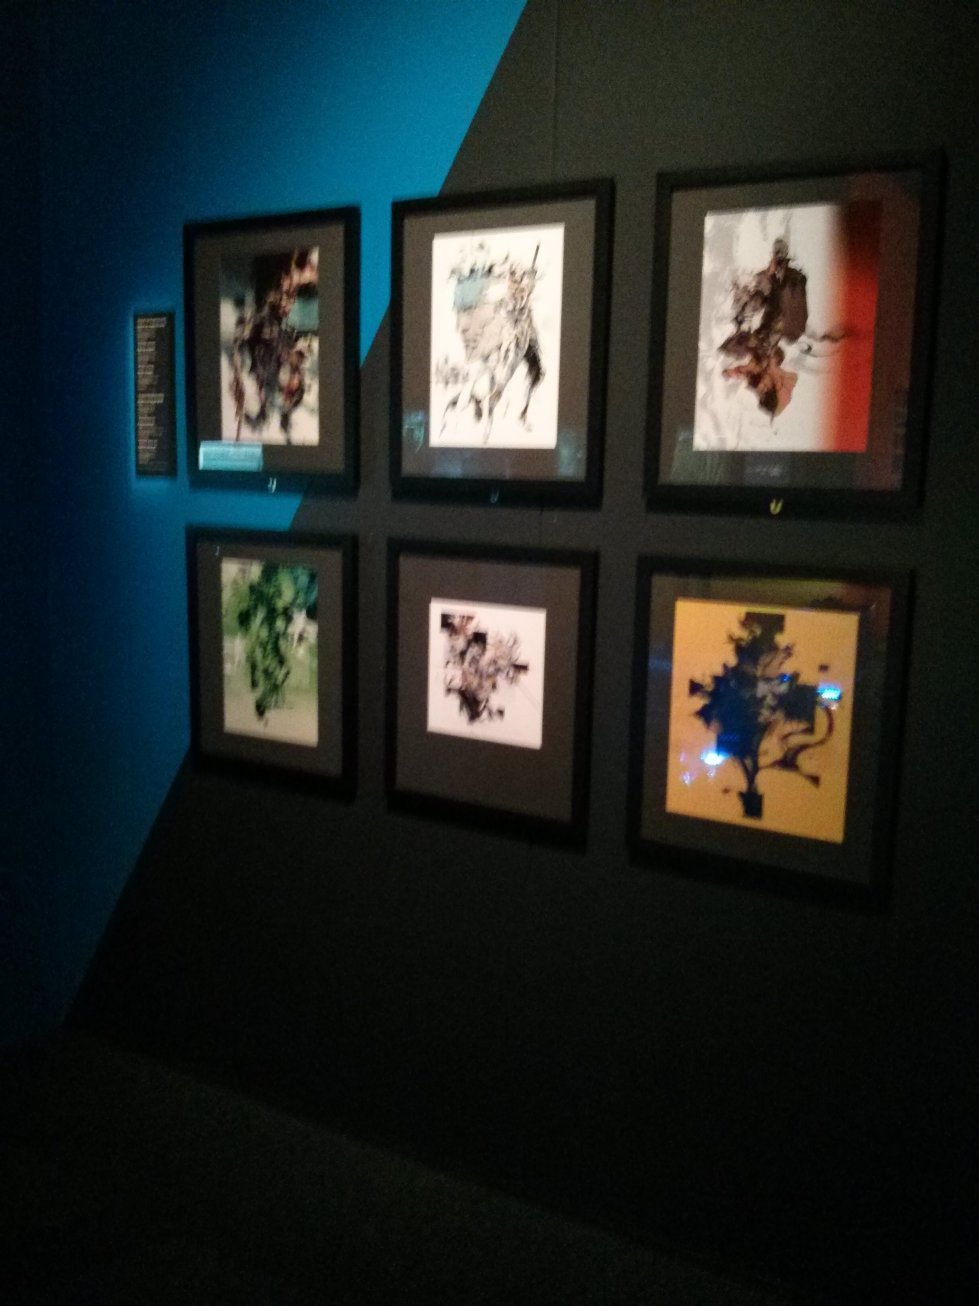 Metal Gear artwork